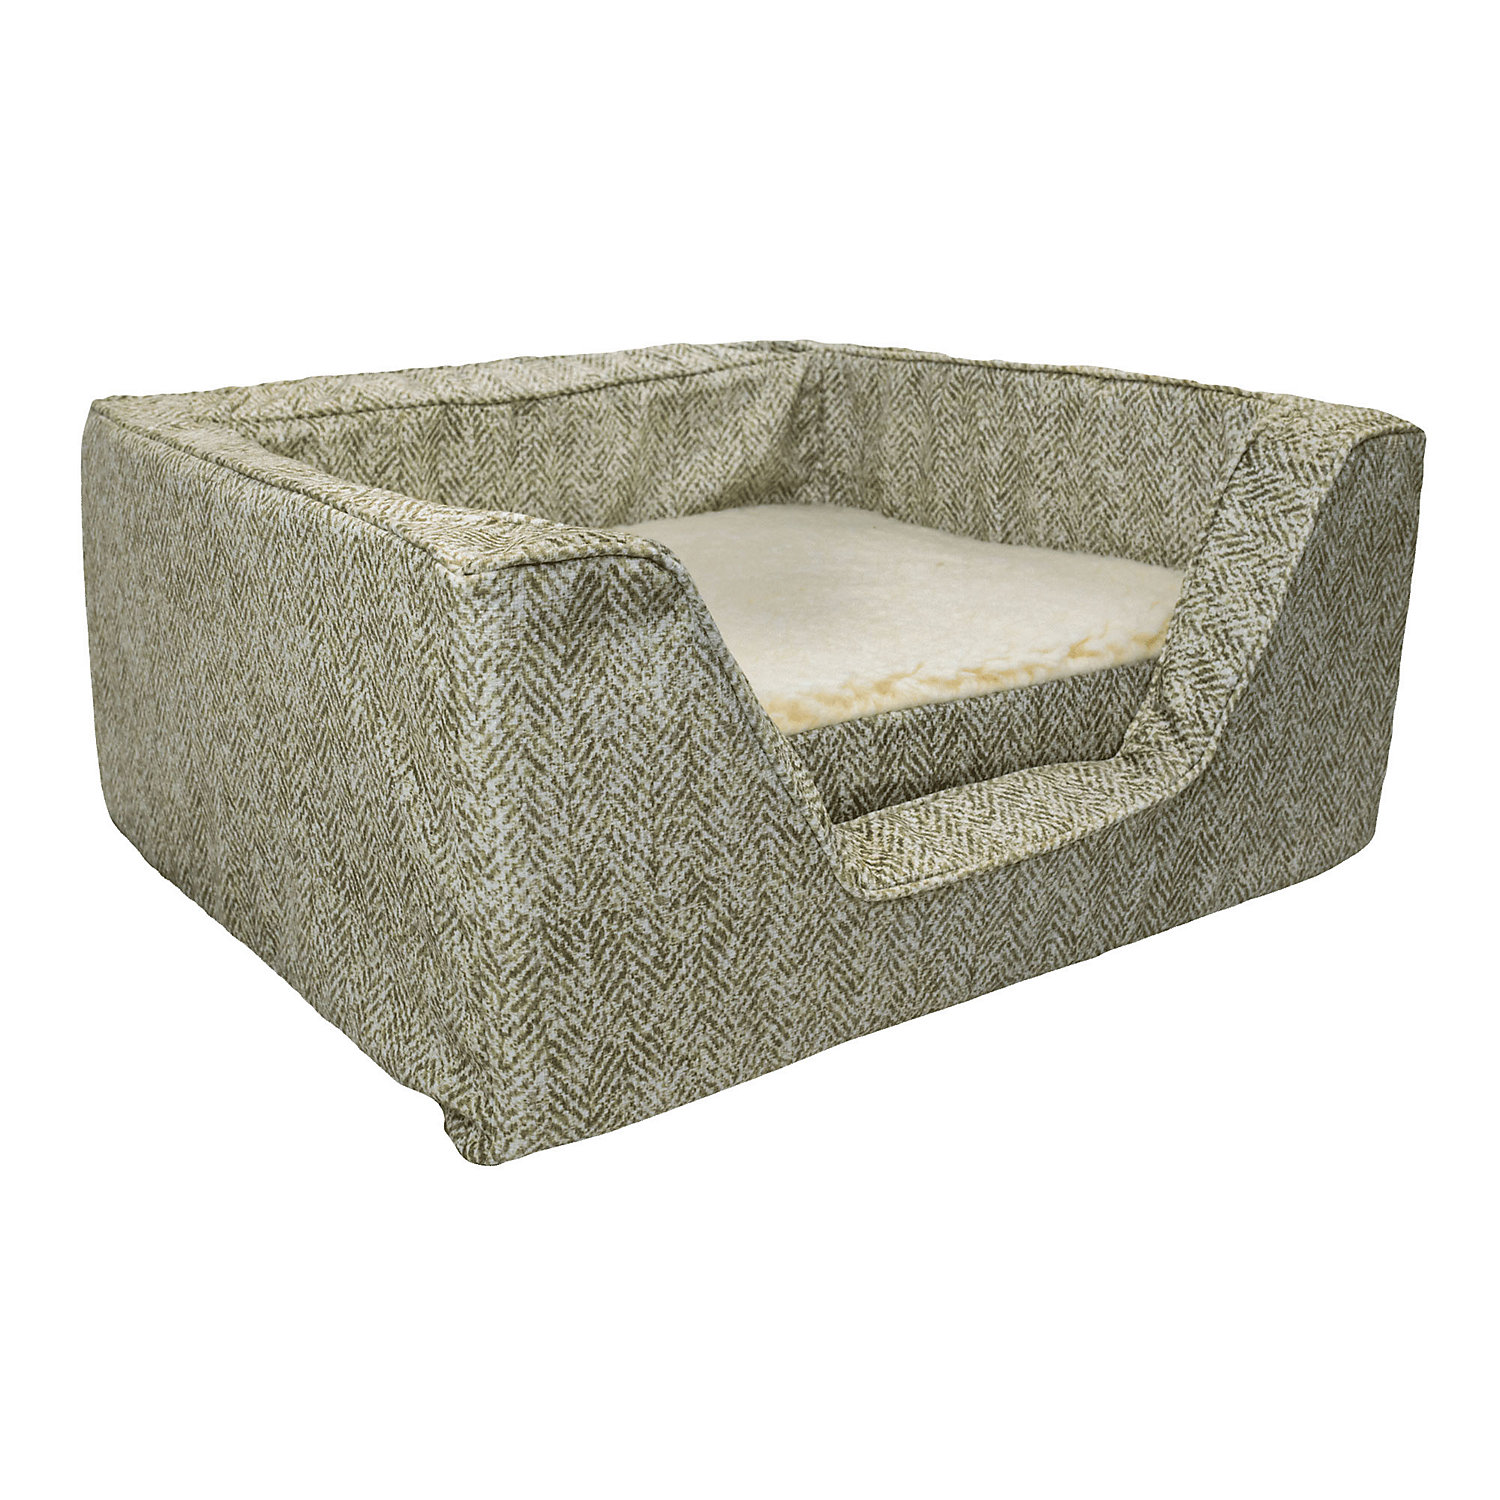 Snoozer Premium Micro Suede Square Palmer Citron With Memory Foam Dog Bed 23 L X 19 W Small